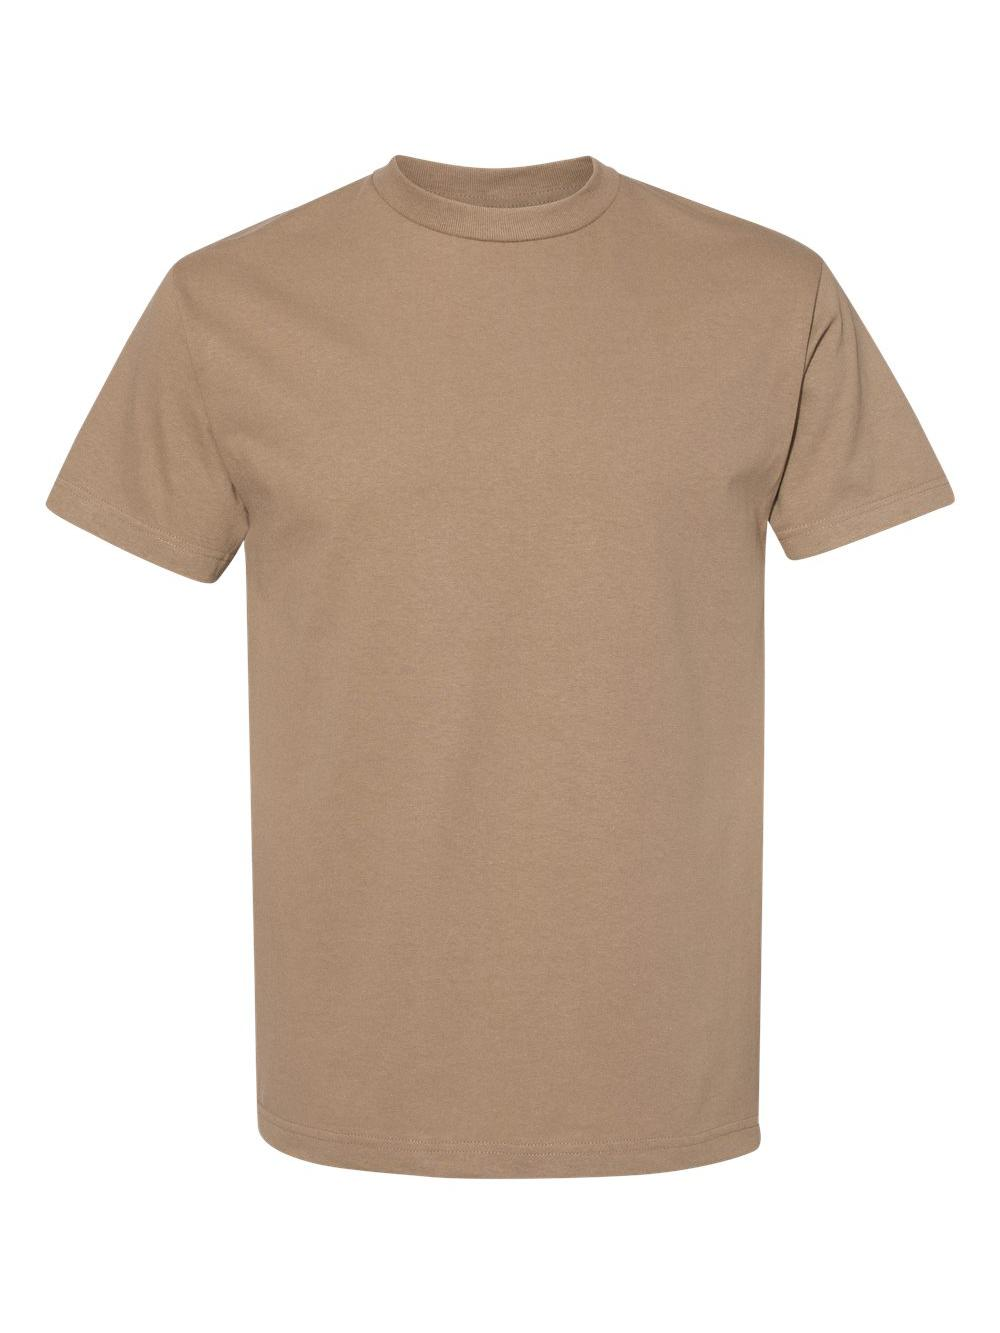 ALSTYLE-Classic-T-Shirt-1301 thumbnail 71